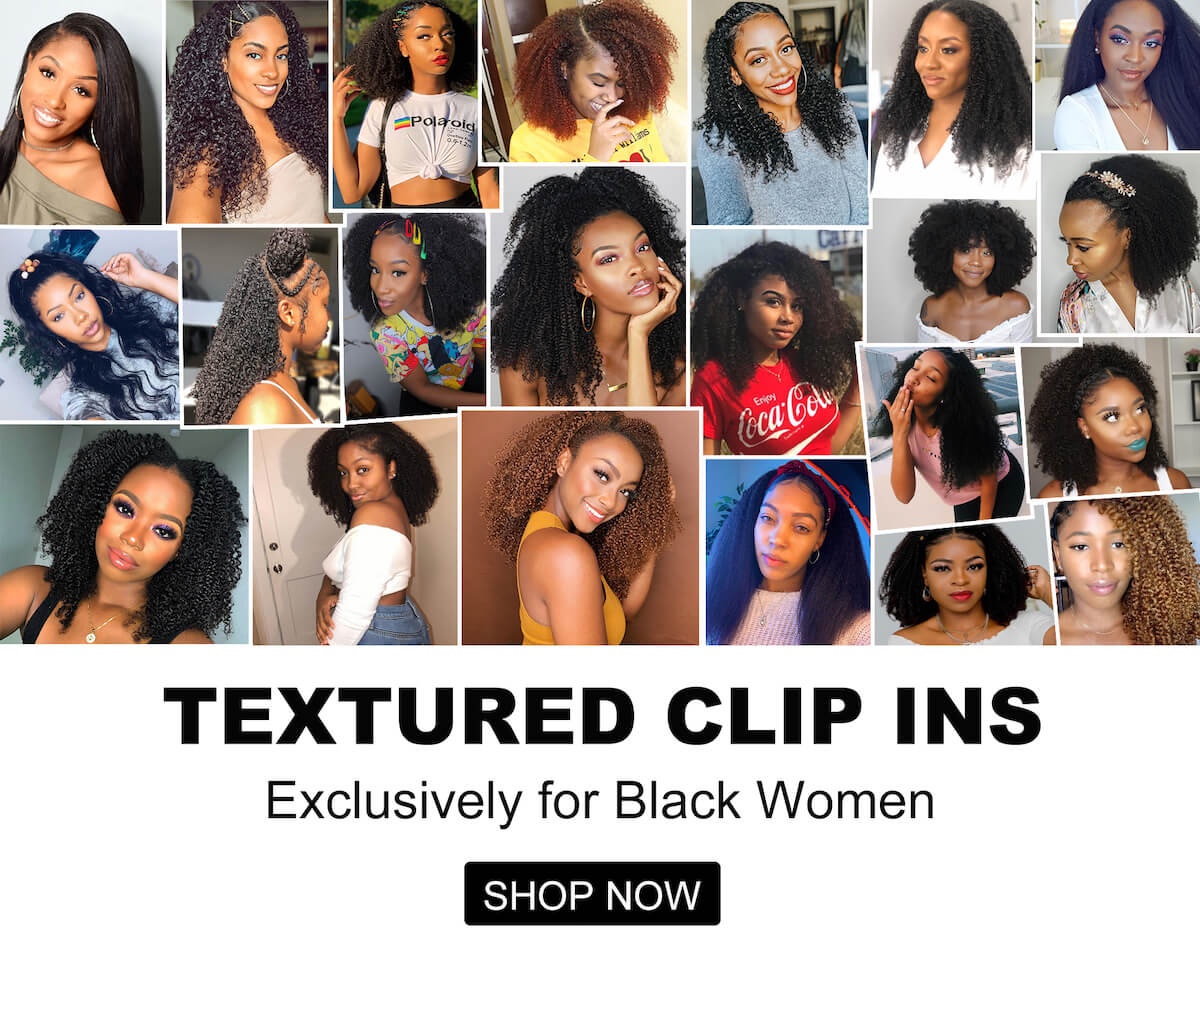 Human Hair Extensions for relaxed and natural hair : BetterLength